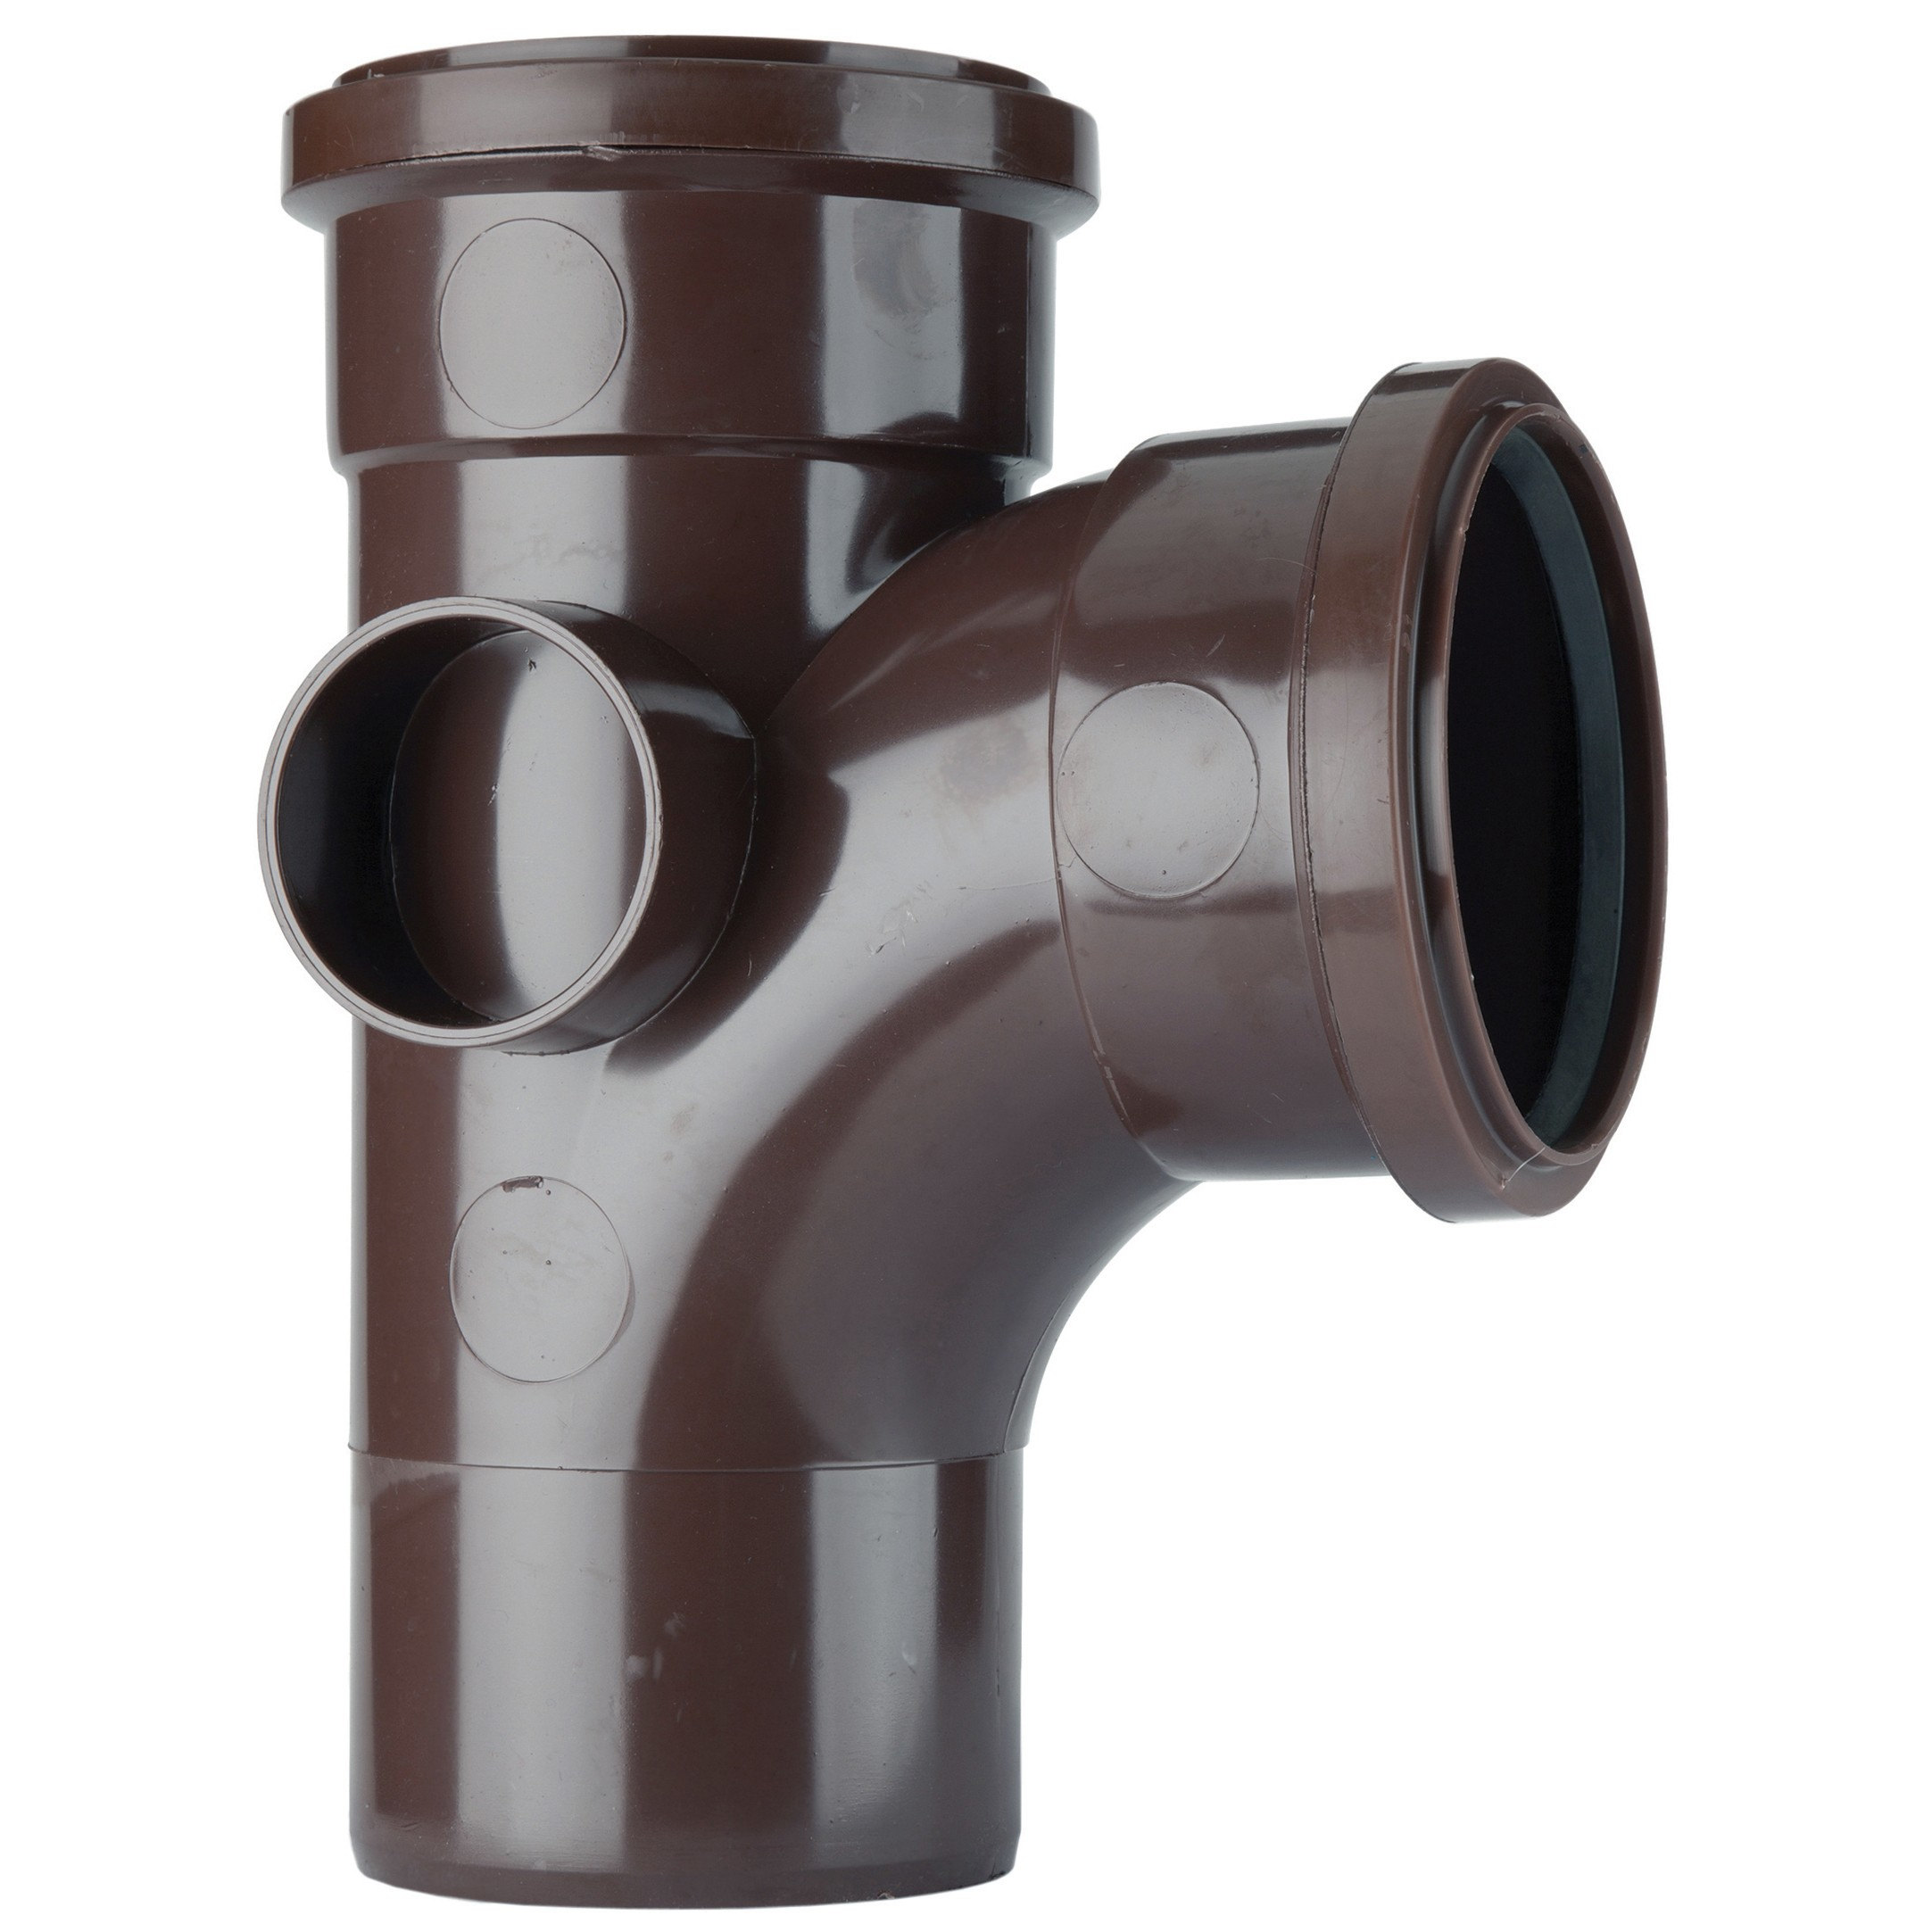 Polypipe 110mm Soil 92.5 Degree Equal Single Branch - Brown